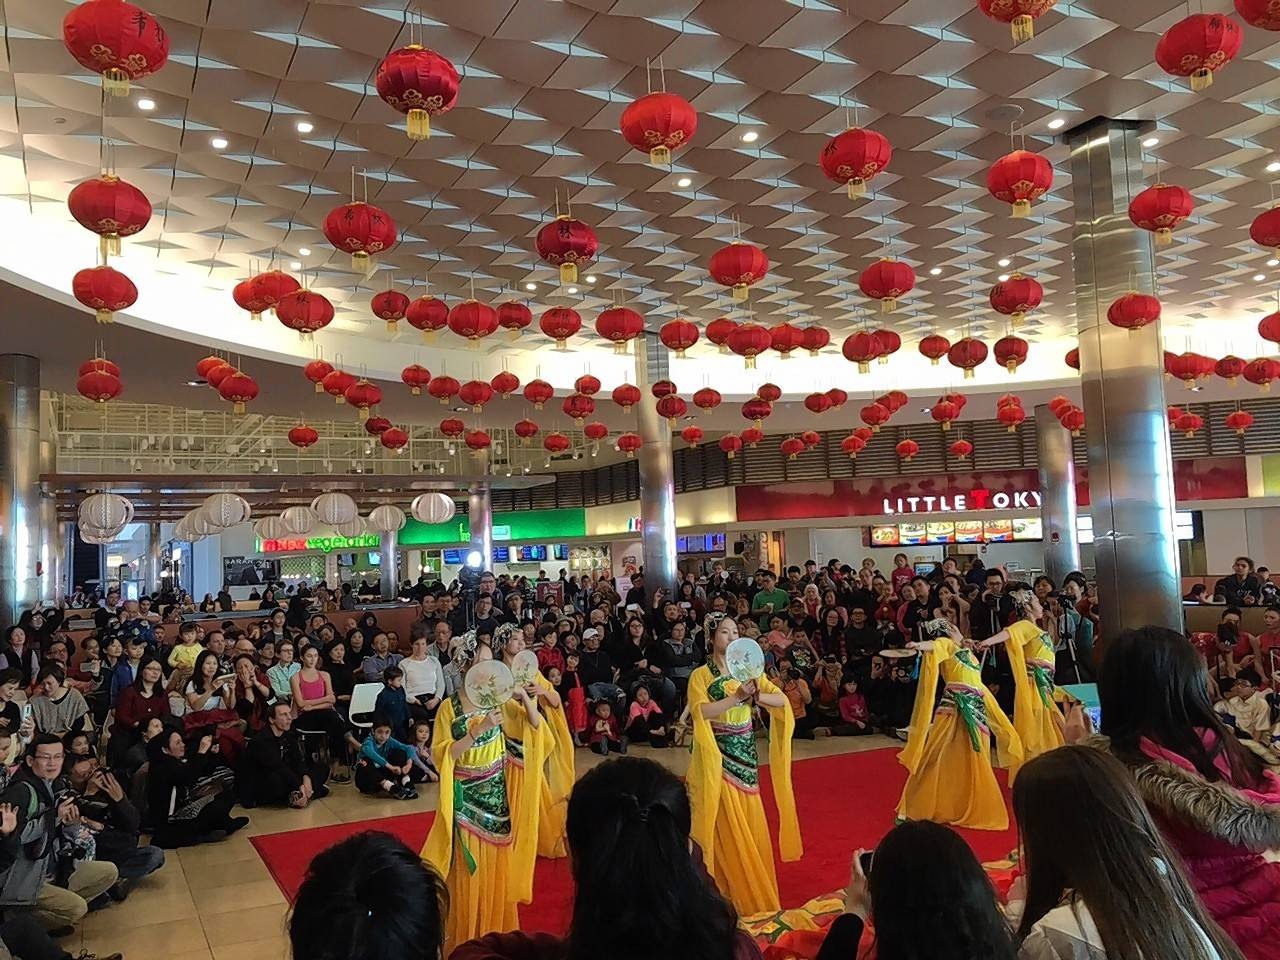 Traditional Chinese dancers perform last year at the Fashion Outlets of Chicago in honor of Chinese Lunar New Year.